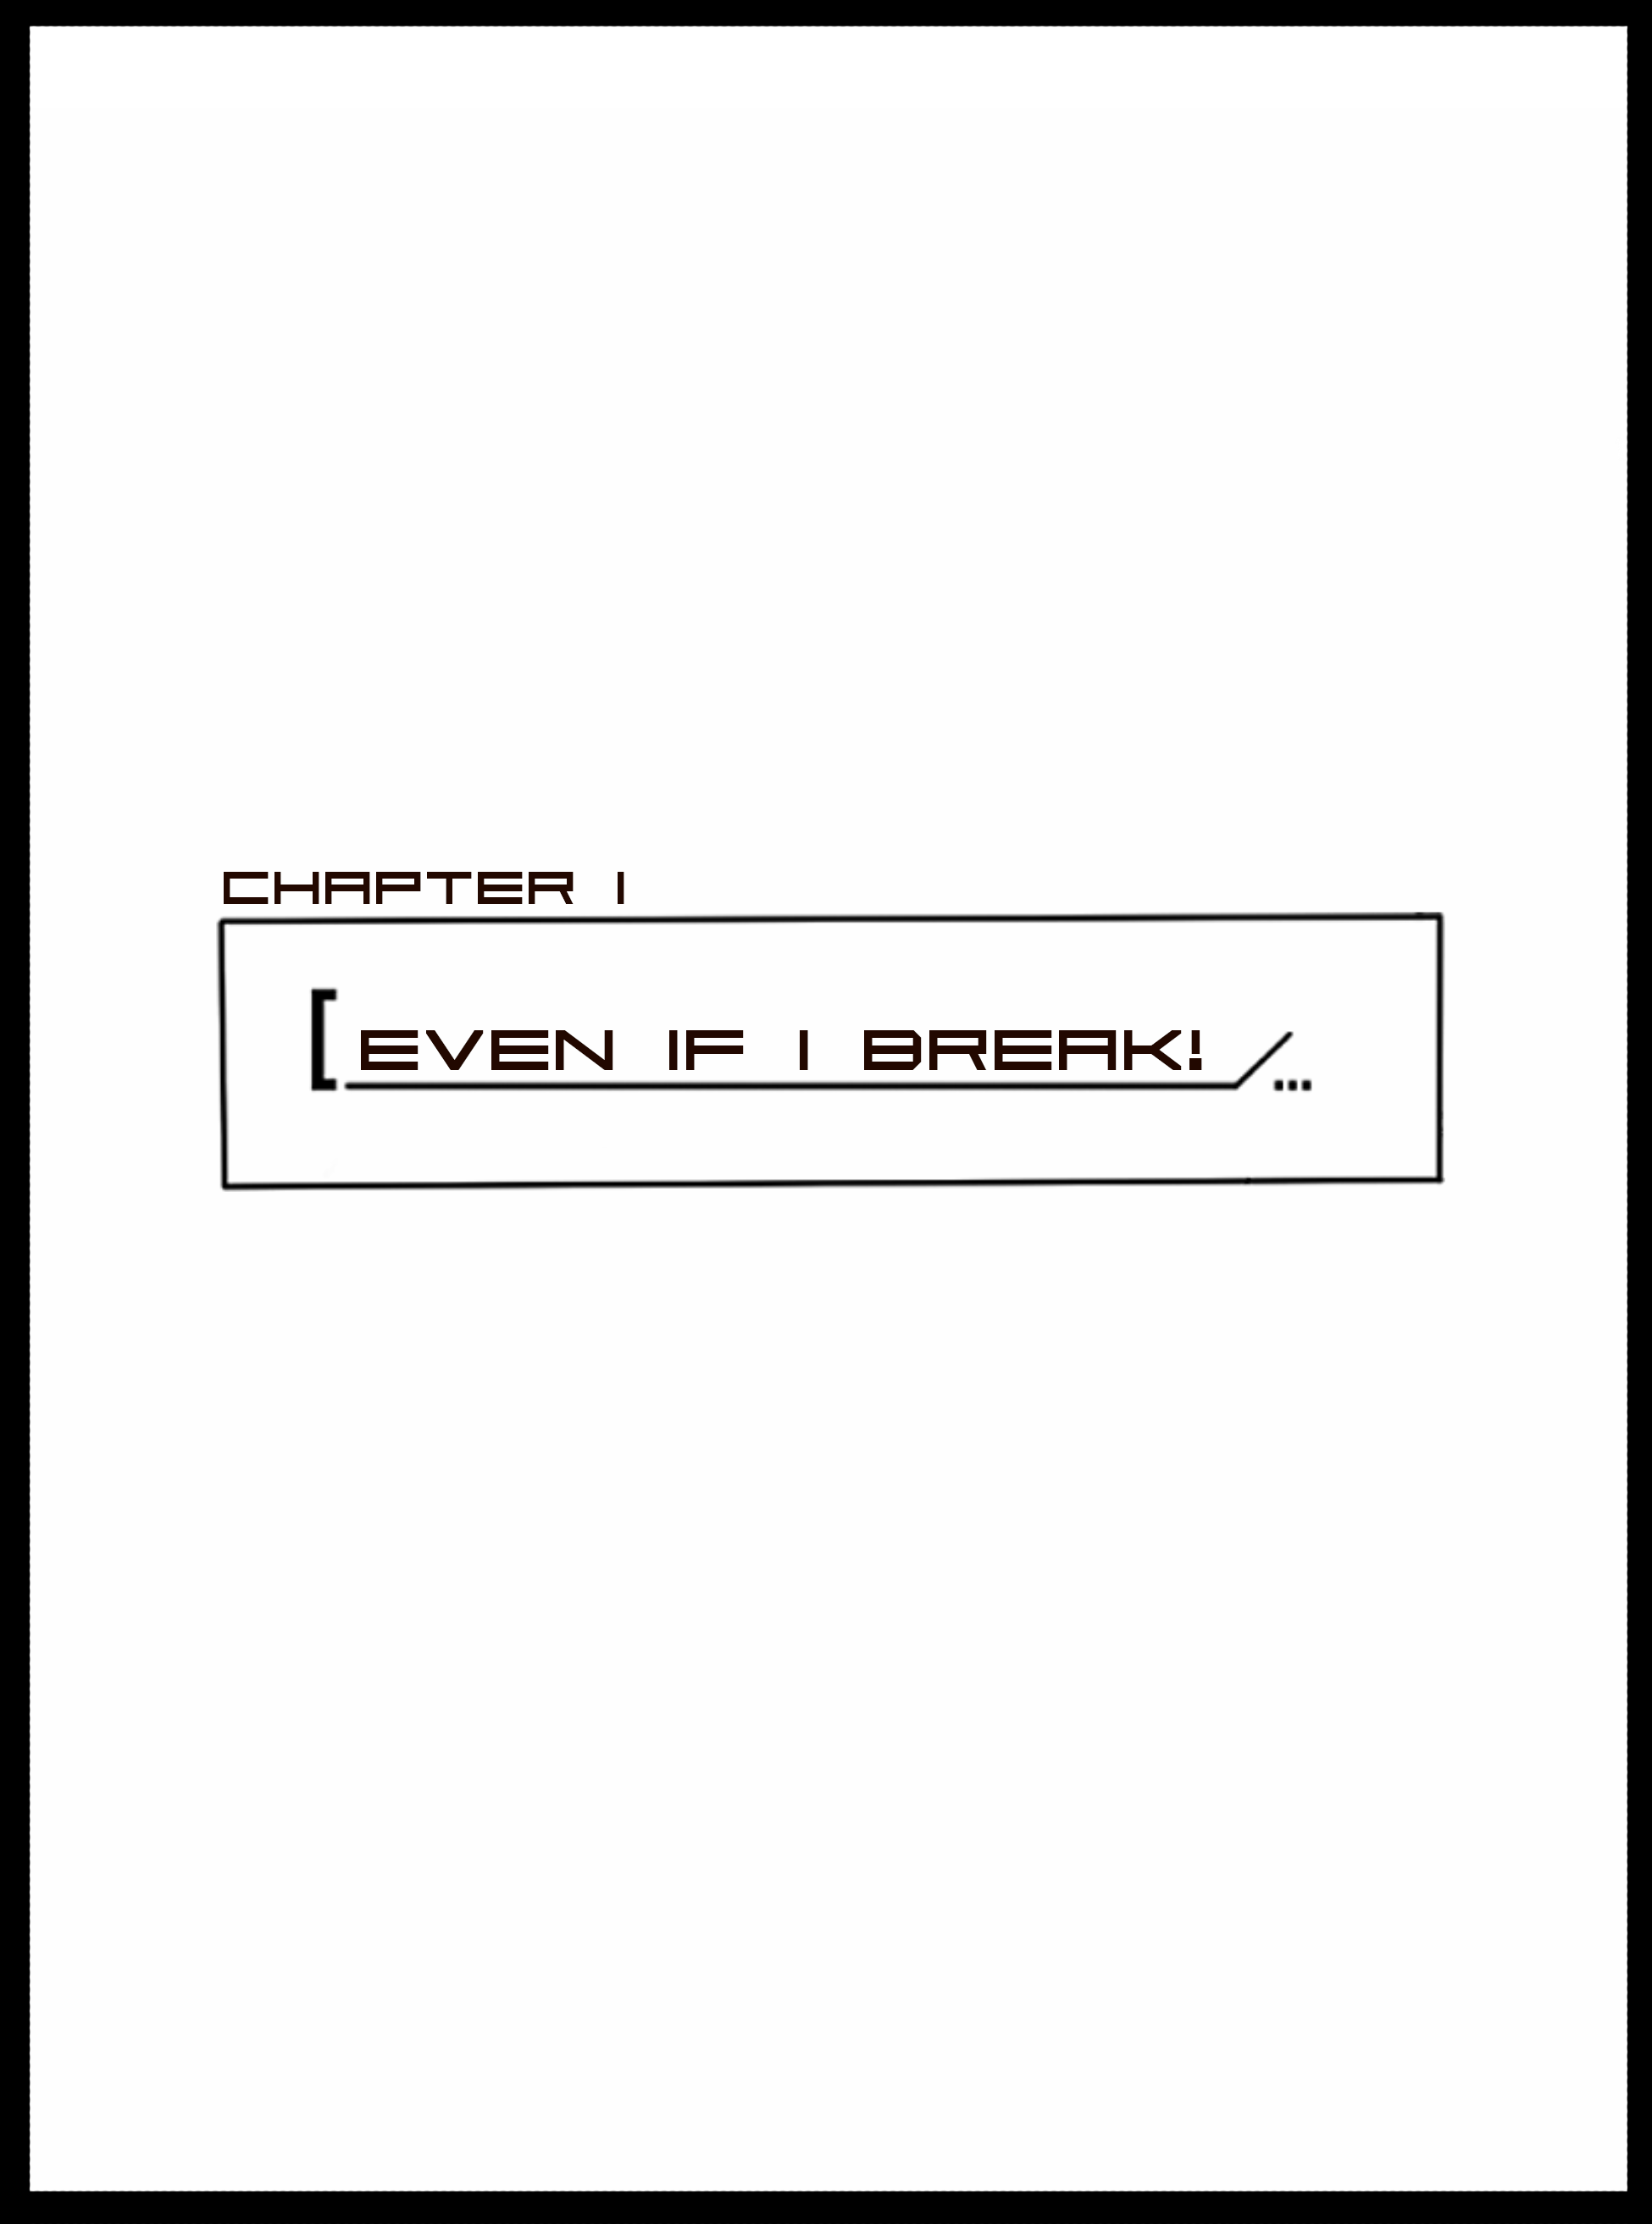 ChapterTitlePage.png